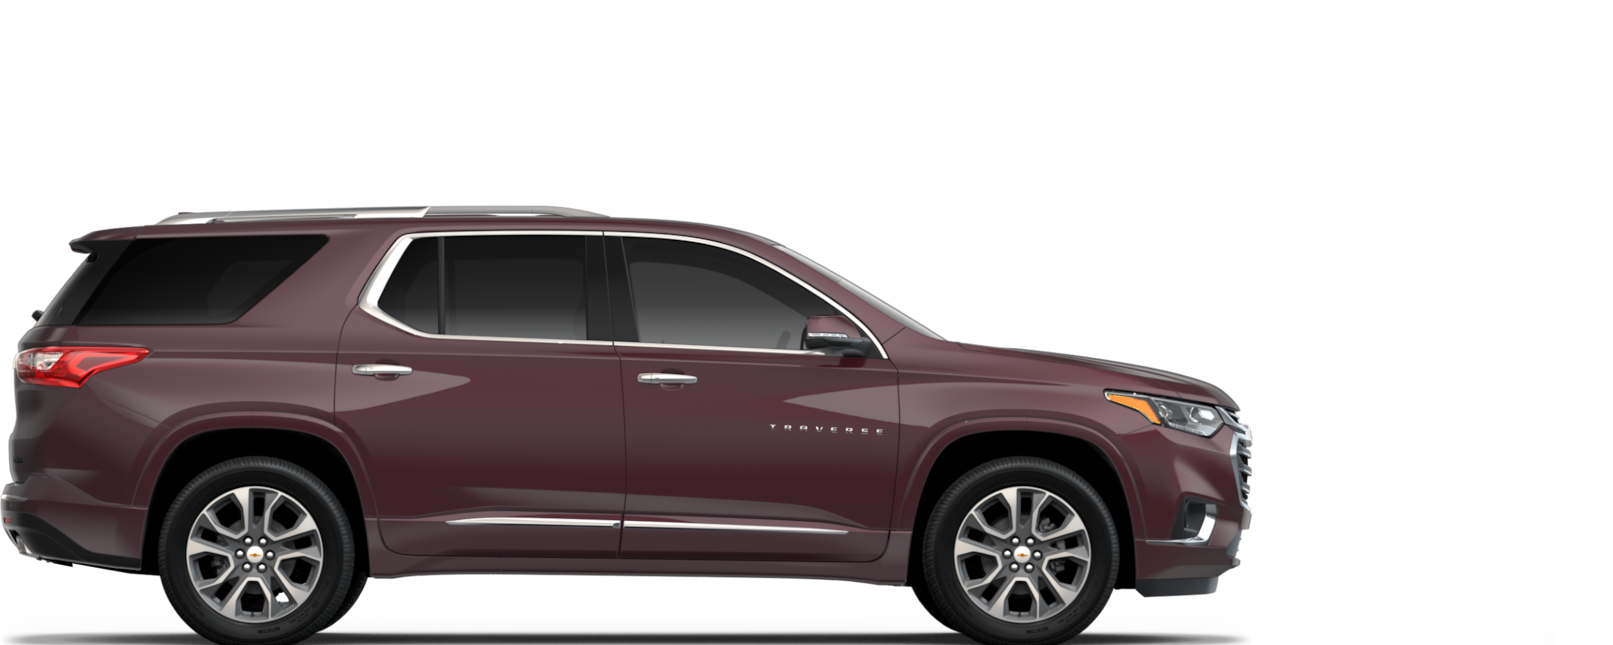 chevy traverse lease deals michigan lamoureph blog